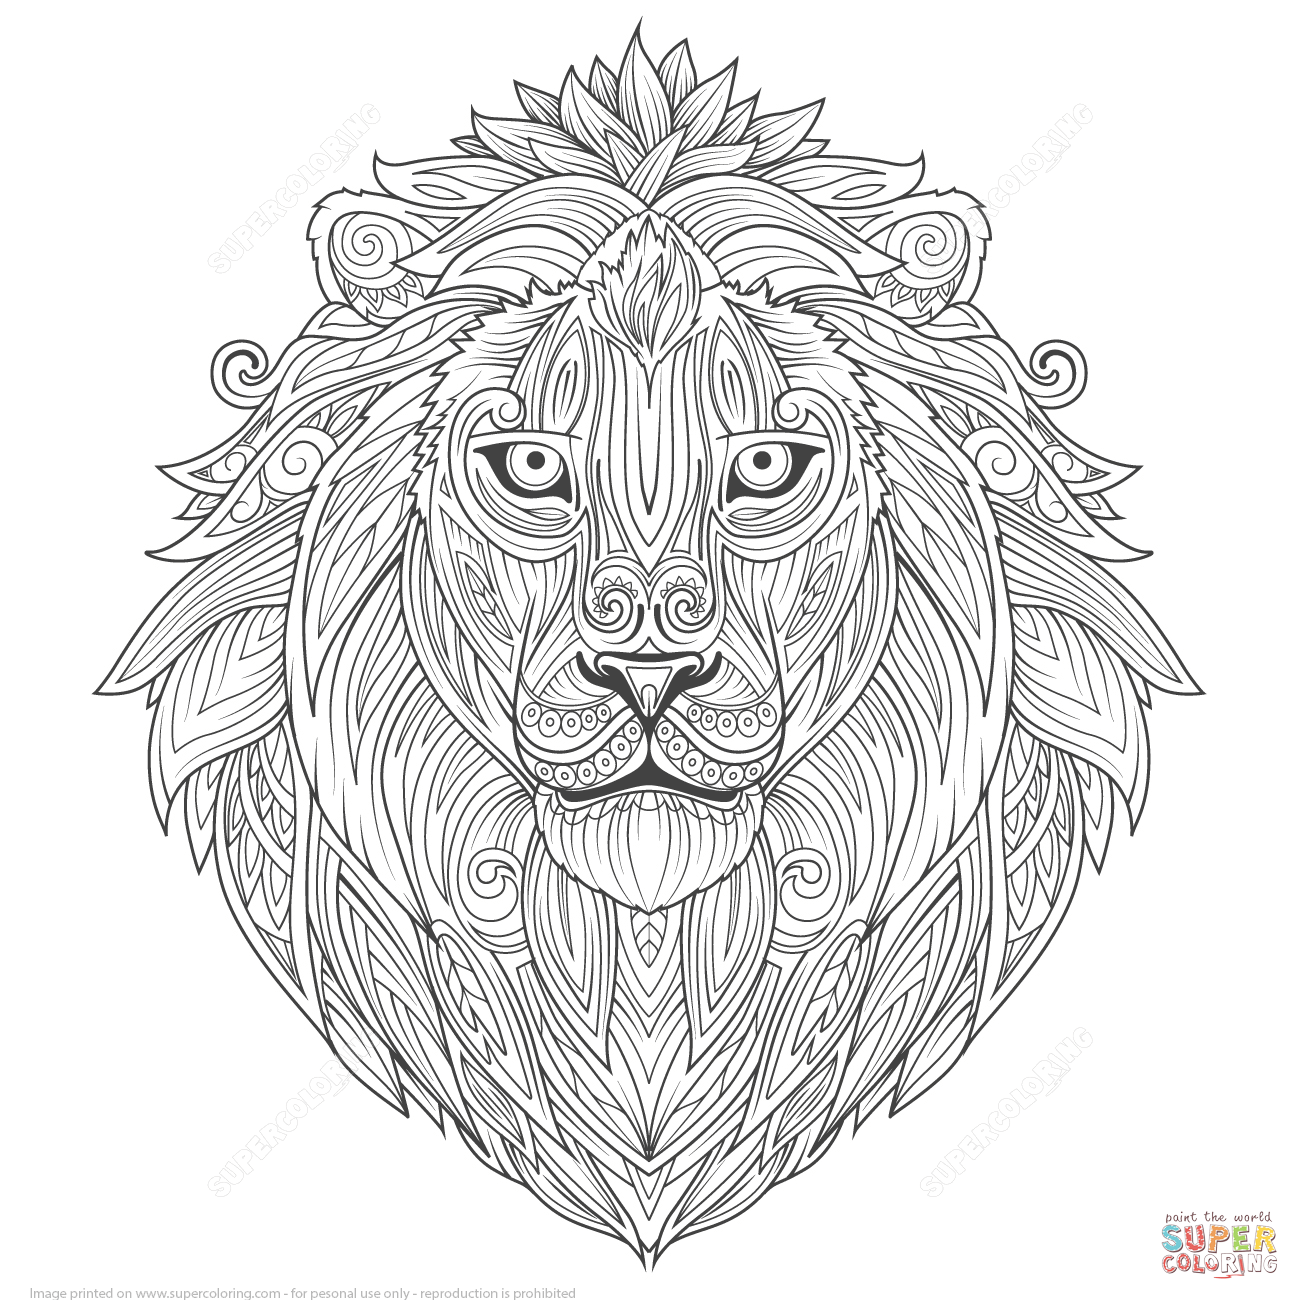 1300x1300 Lion Ethnic Zentangle Coloring Page Free Printable Pages Inside